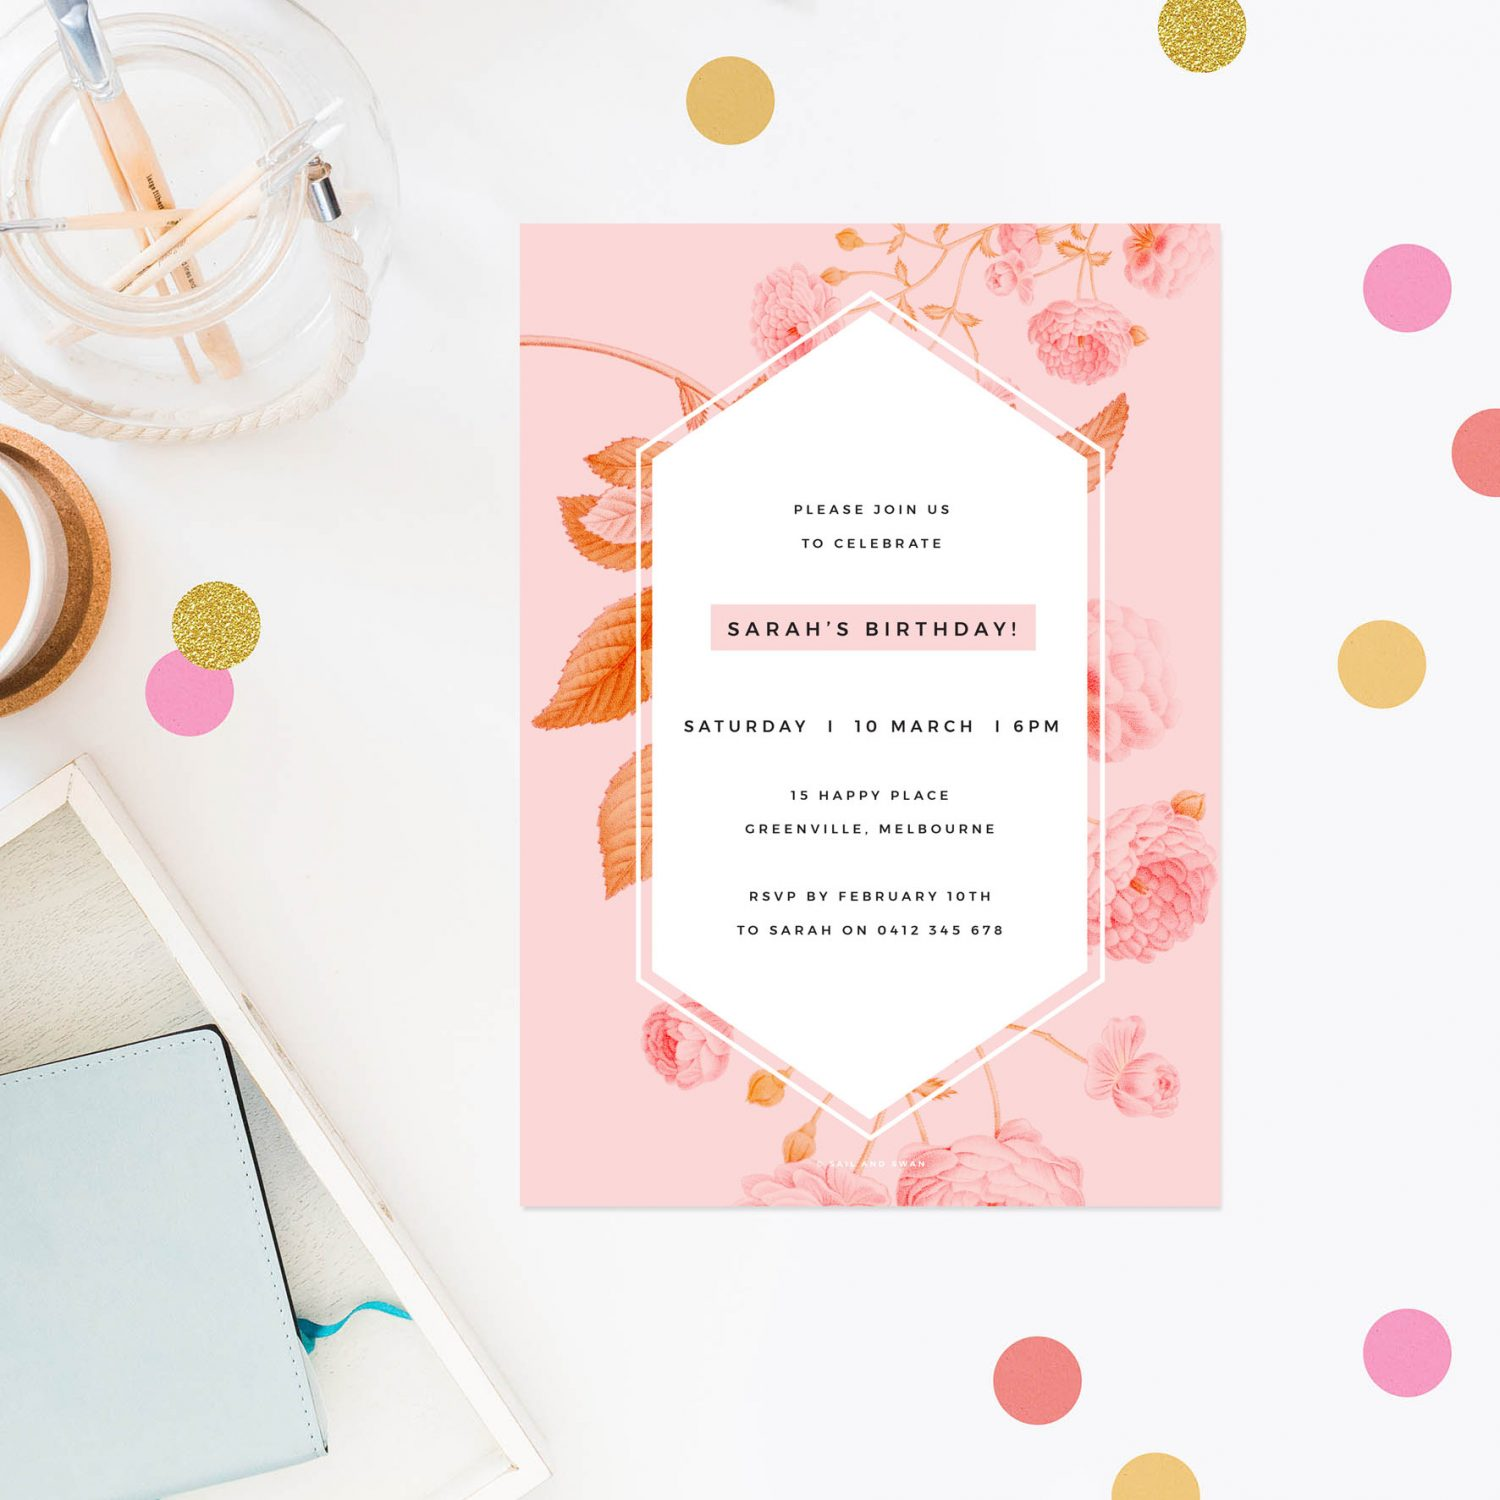 Modern Pink Floral Birthday Invitations - Sail and Swan